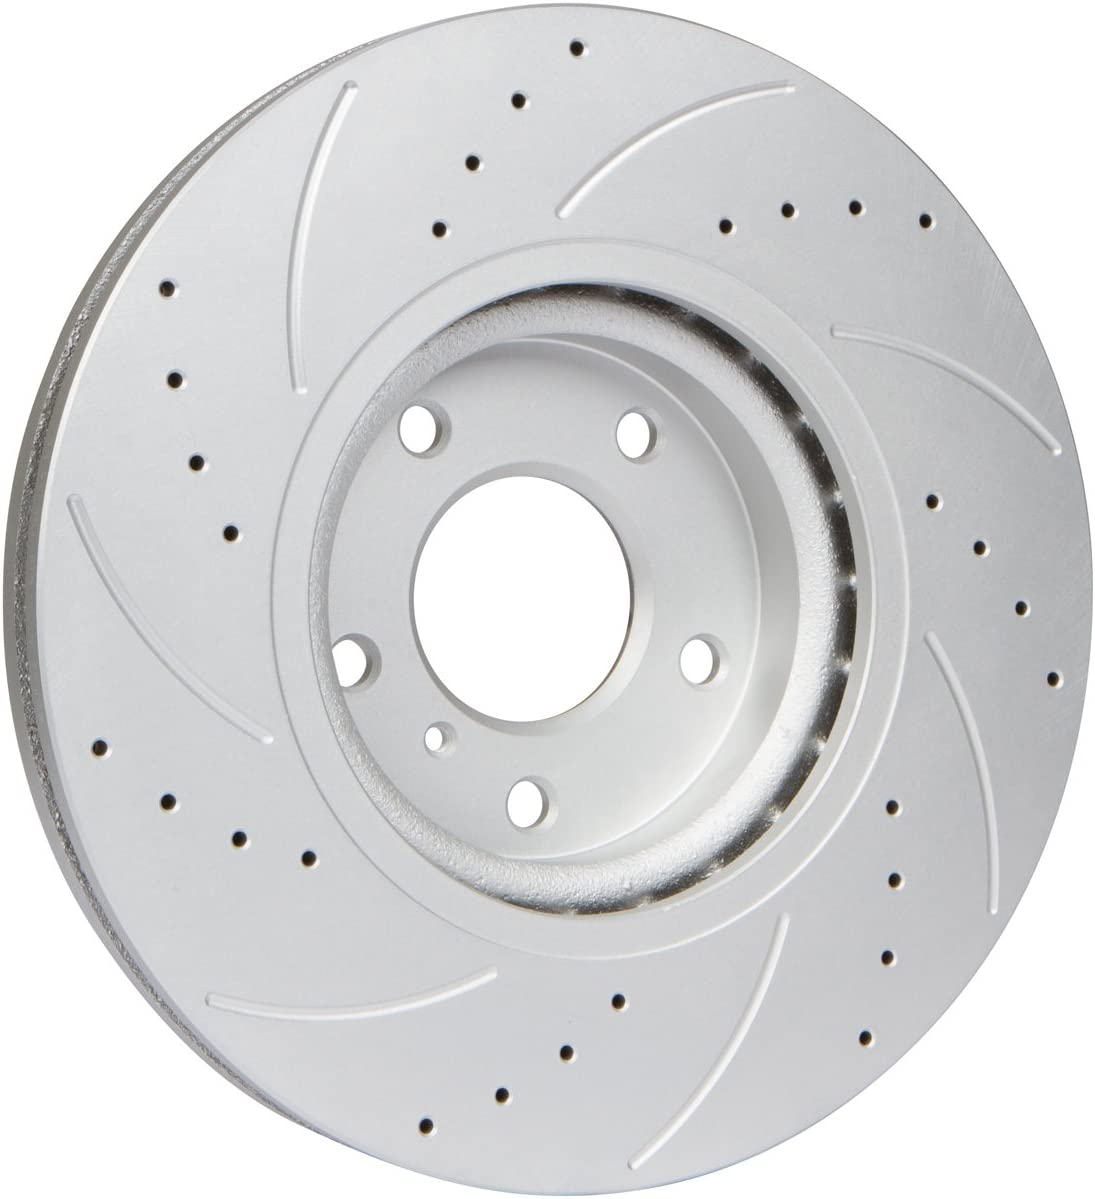 FRONT /& REAR DRILLED AND SLOTTED PERFORMANCE BRAKE Rotors For BMW 330 E46